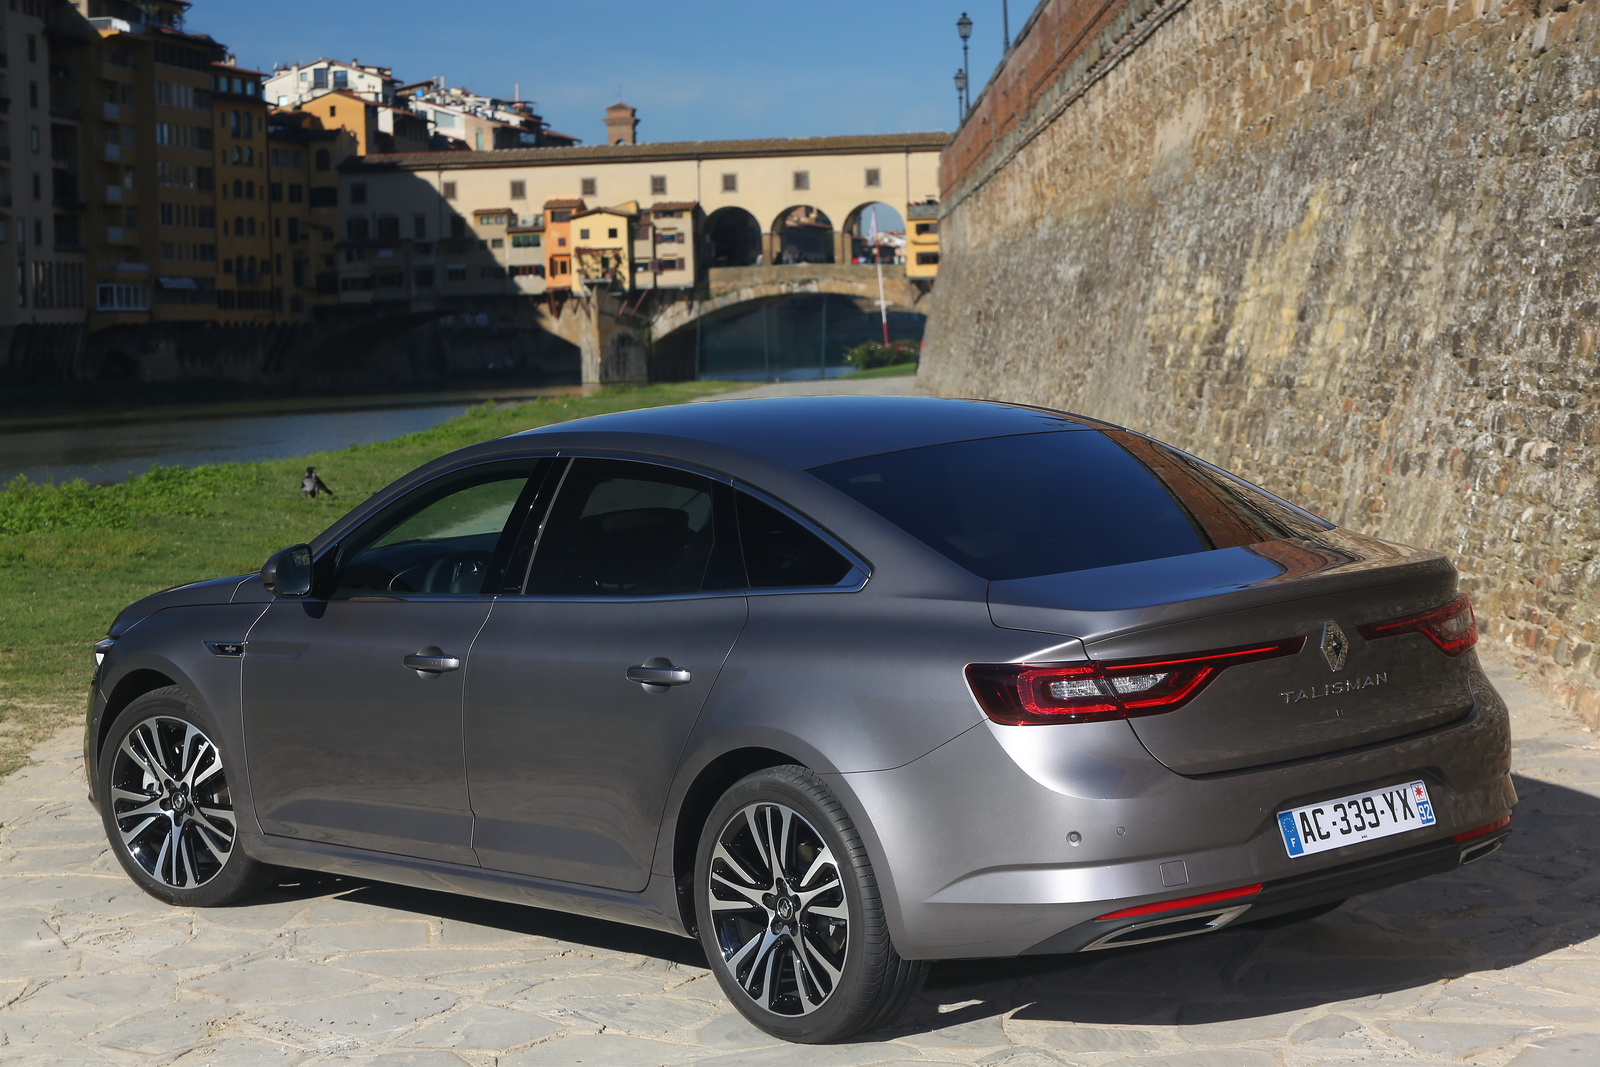 renault talisman fiyatlar a kland. Black Bedroom Furniture Sets. Home Design Ideas